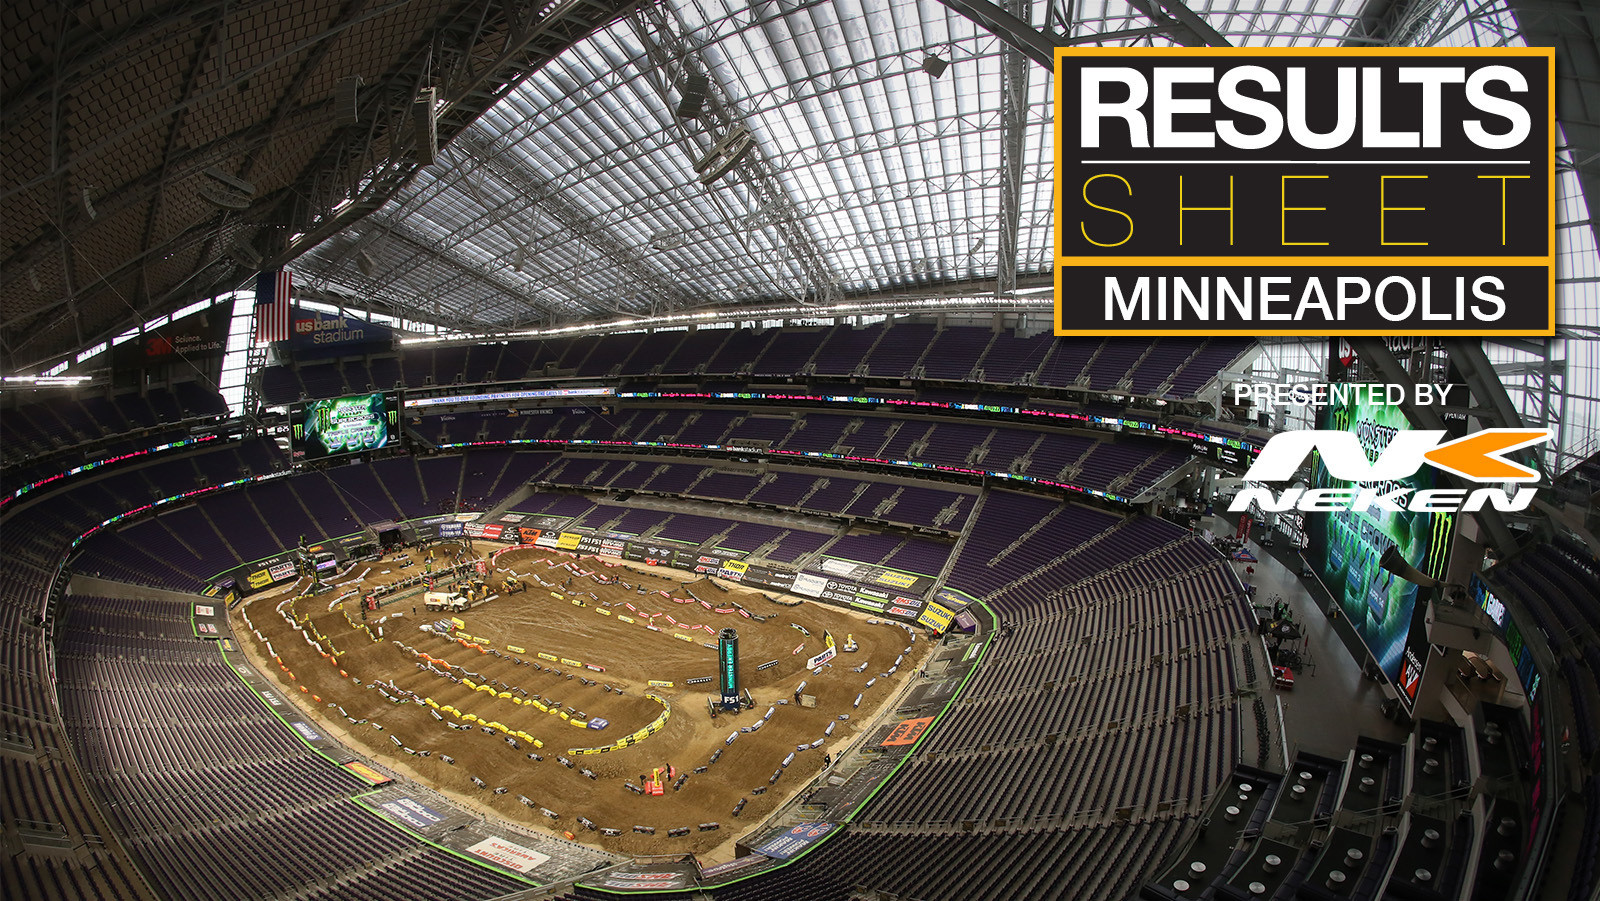 Results Sheet: 2018 Minneapolis Supercross